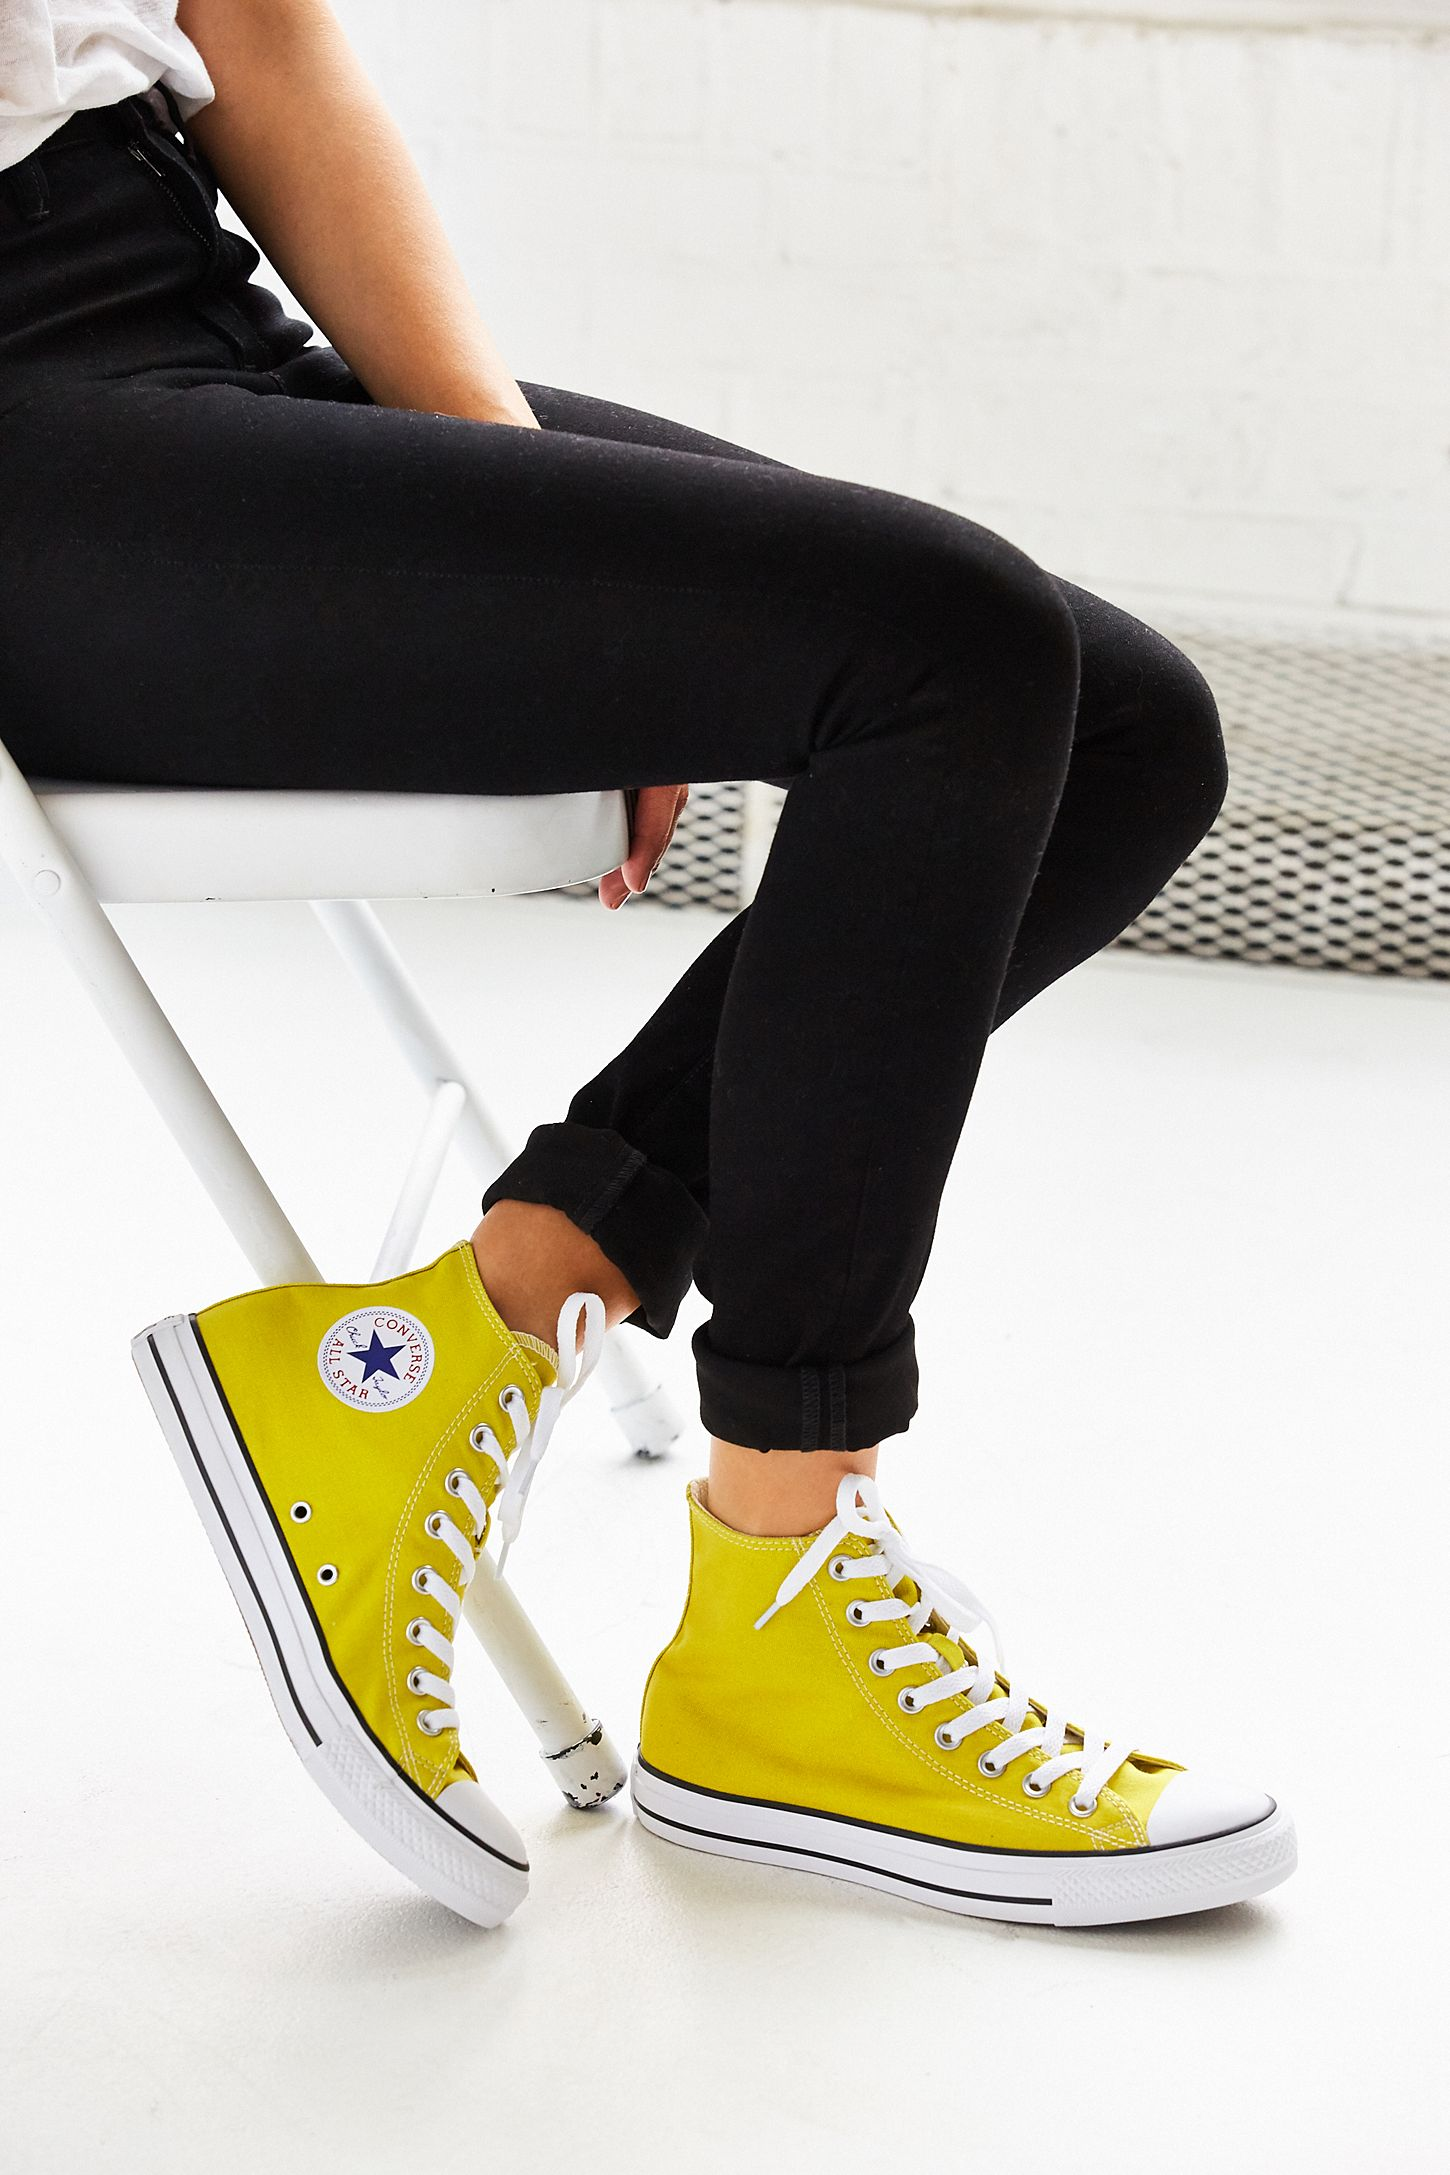 1f3995e1e70e39 Converse Chuck Taylor All Star Seasonal High Top Sneaker. Tap image to  zoom. Hover to zoom. Double Tap to Zoom